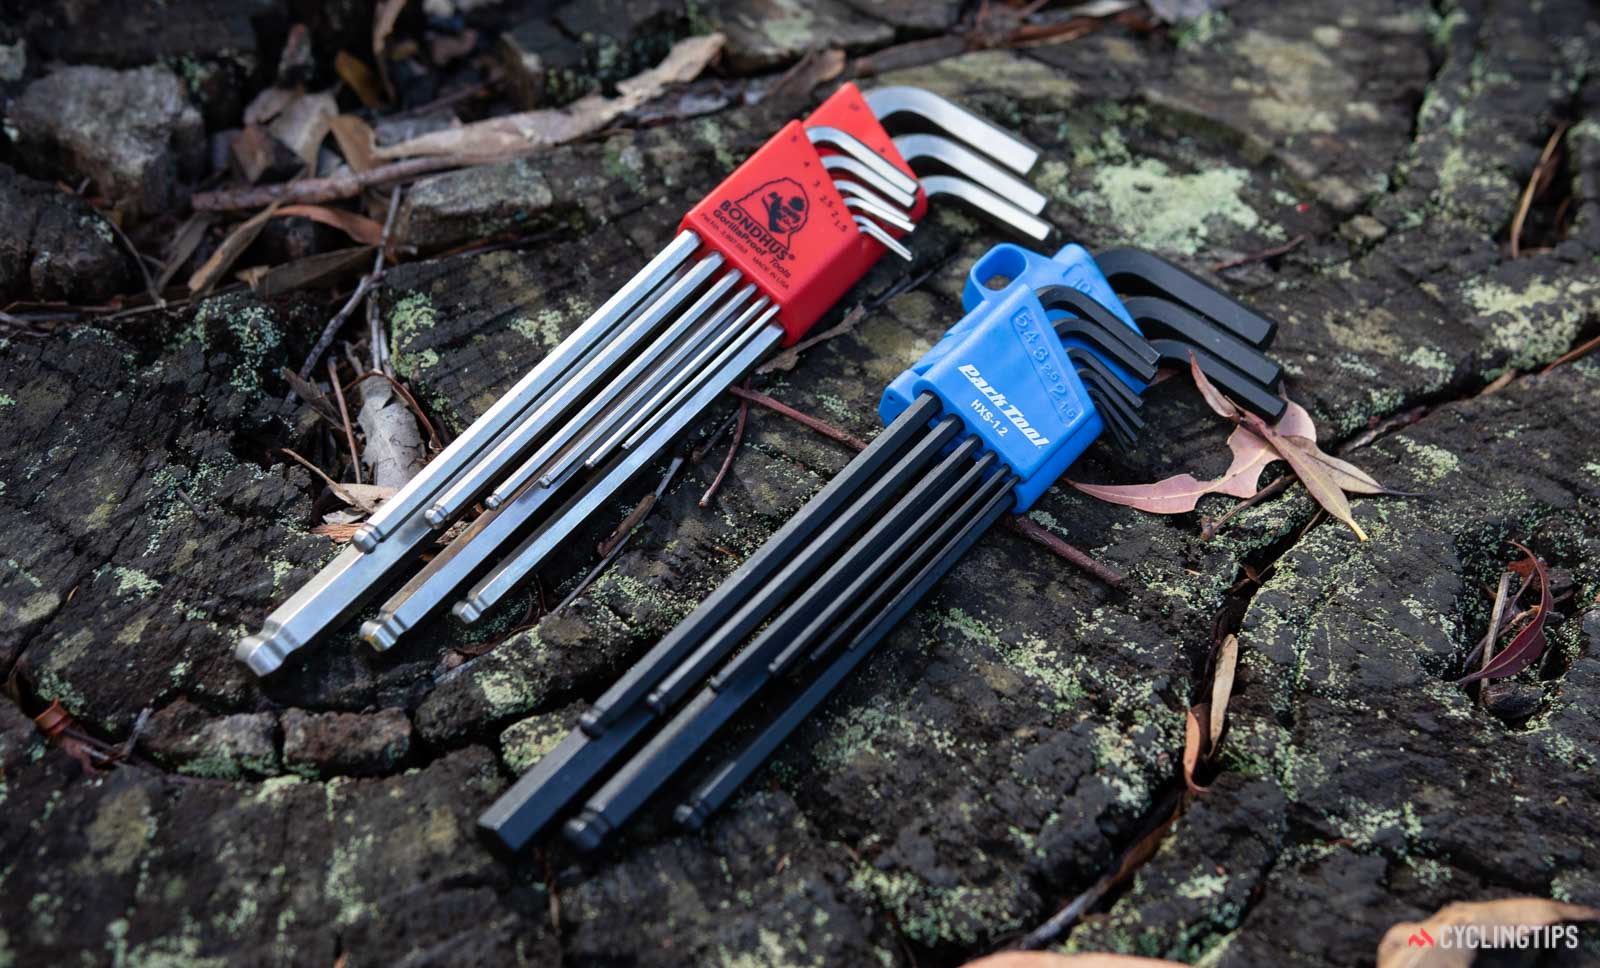 Park Tool hex is made by Bondhus